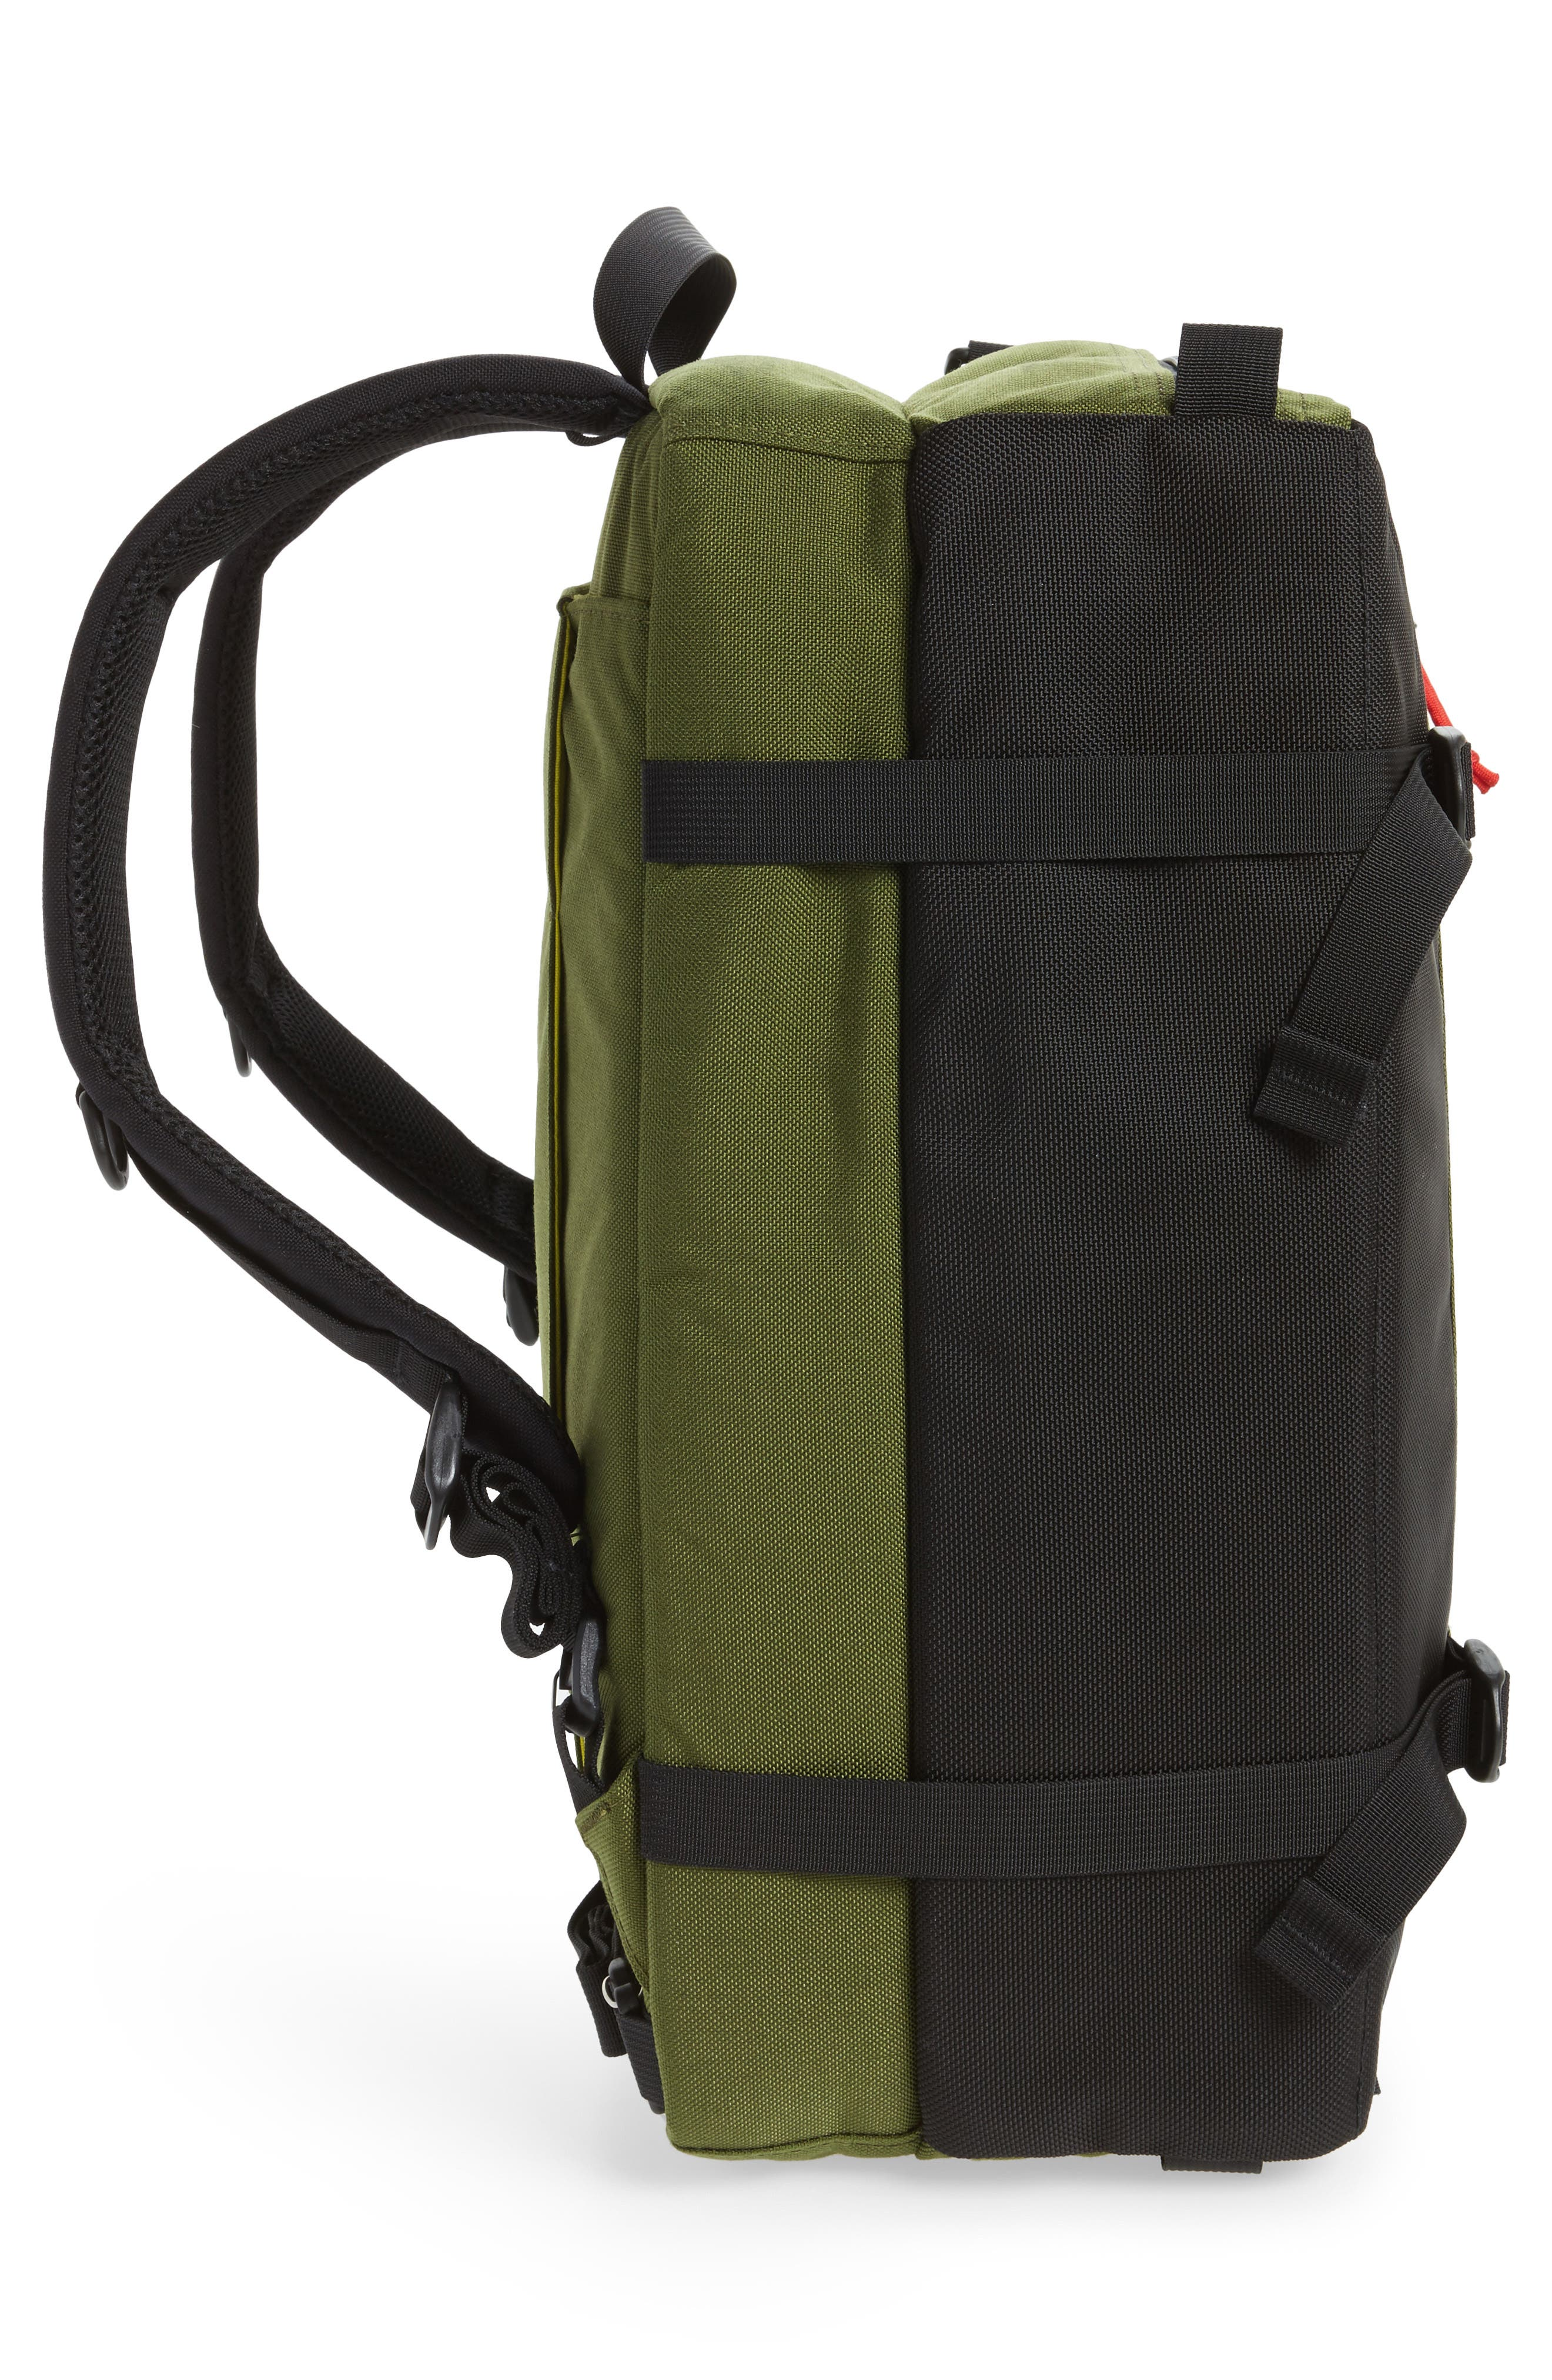 3-Day Briefcase,                             Alternate thumbnail 5, color,                             Olive/ Ballistic Black